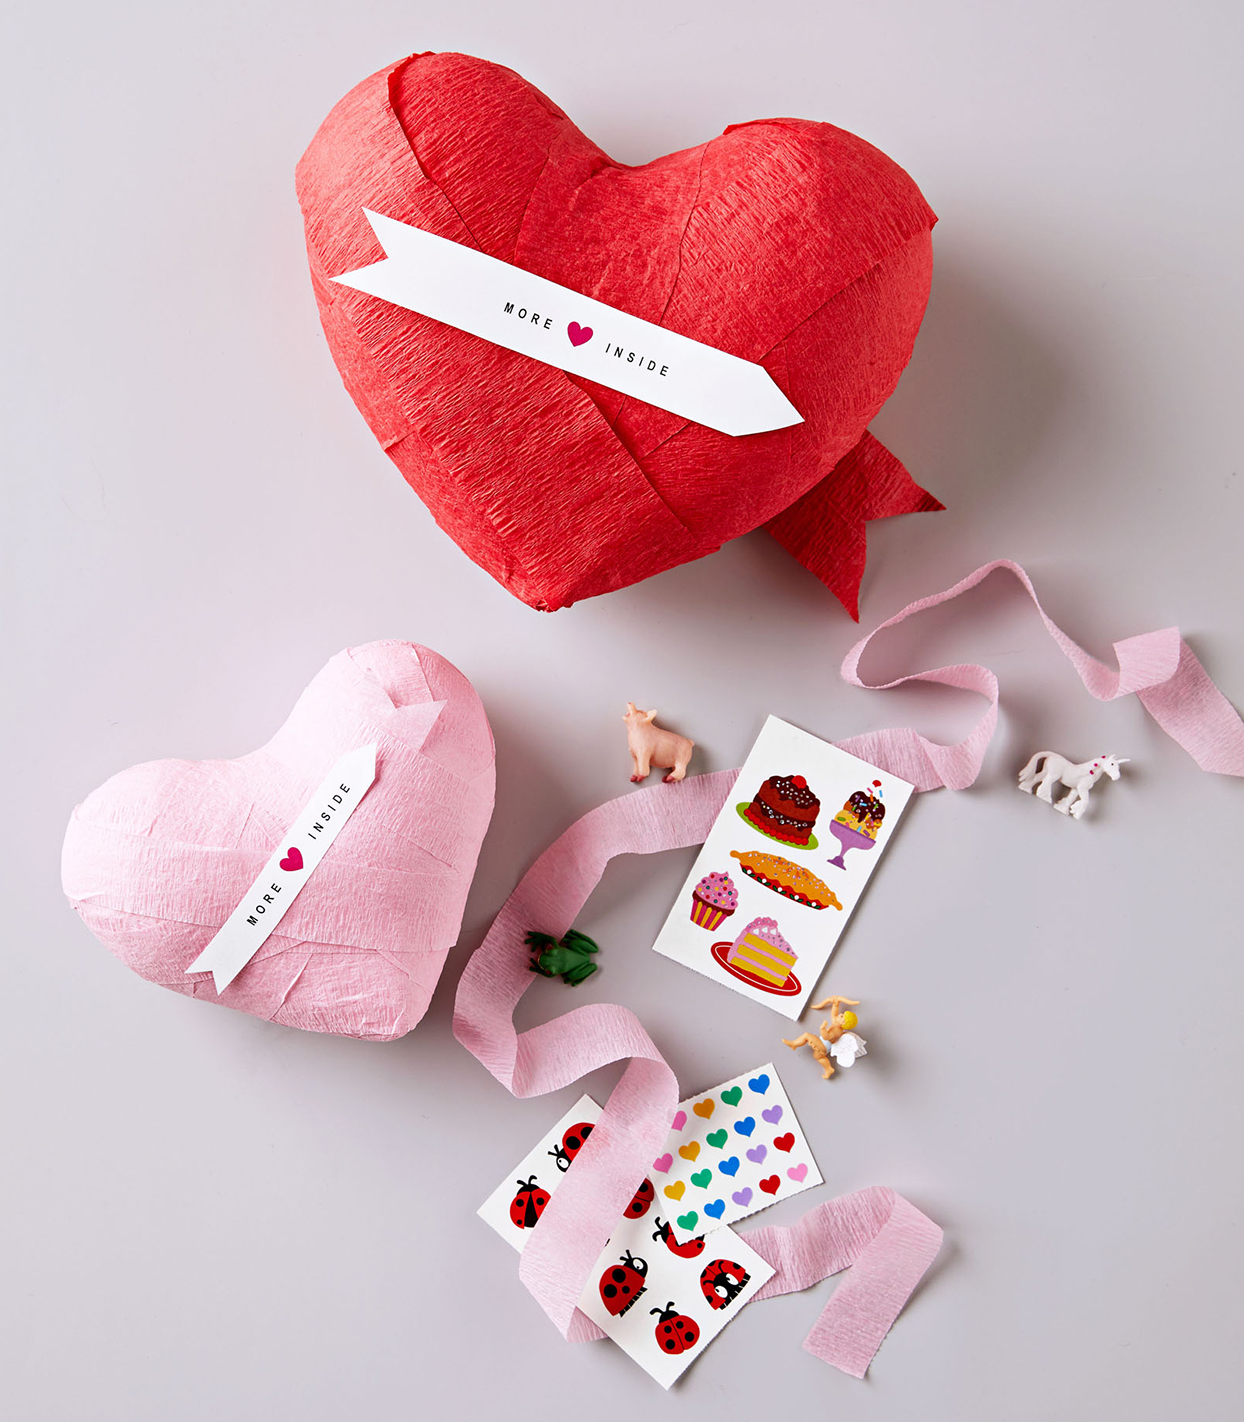 diy surprise filled heart valentines day craft